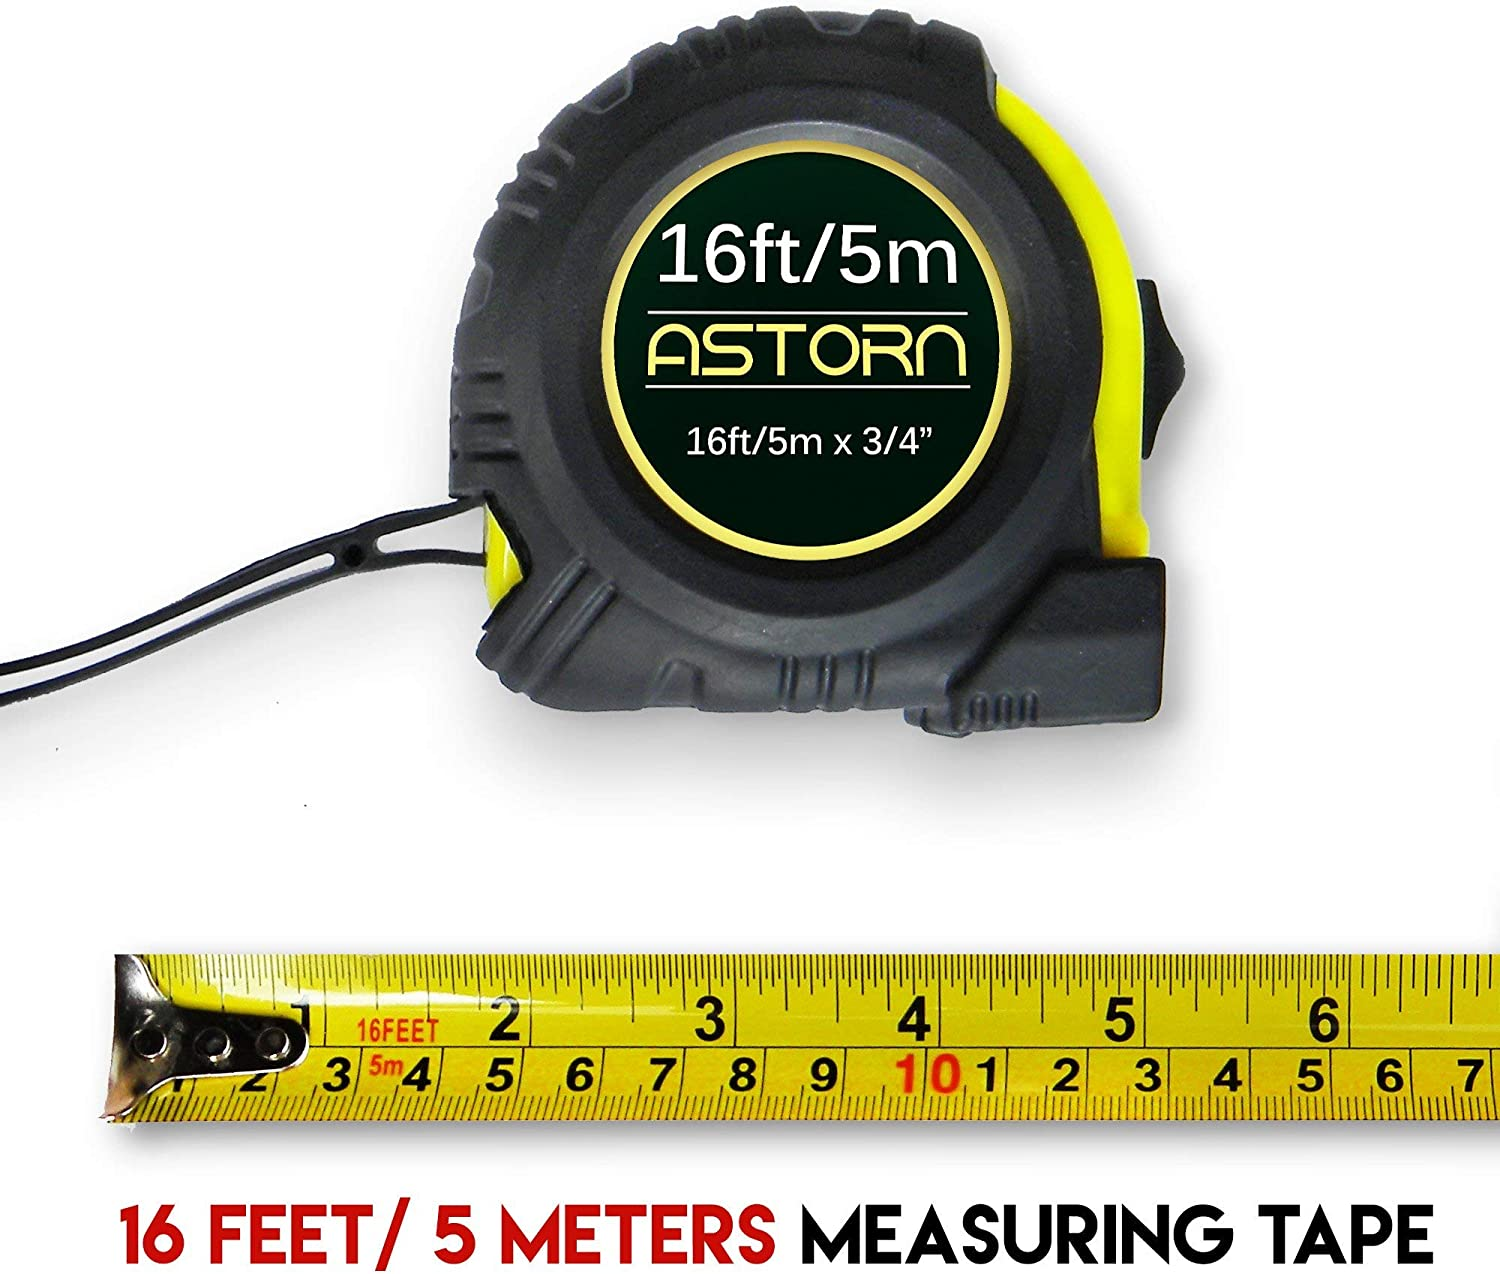 Save 15/% on your purchase. Measuring Tap For Contractors /& DIY | Tape Measurer Cinta Metrica Astorn Tool Set of 2 + Multi-Angle Measuring Ruler | Right Angle Measurement Tool